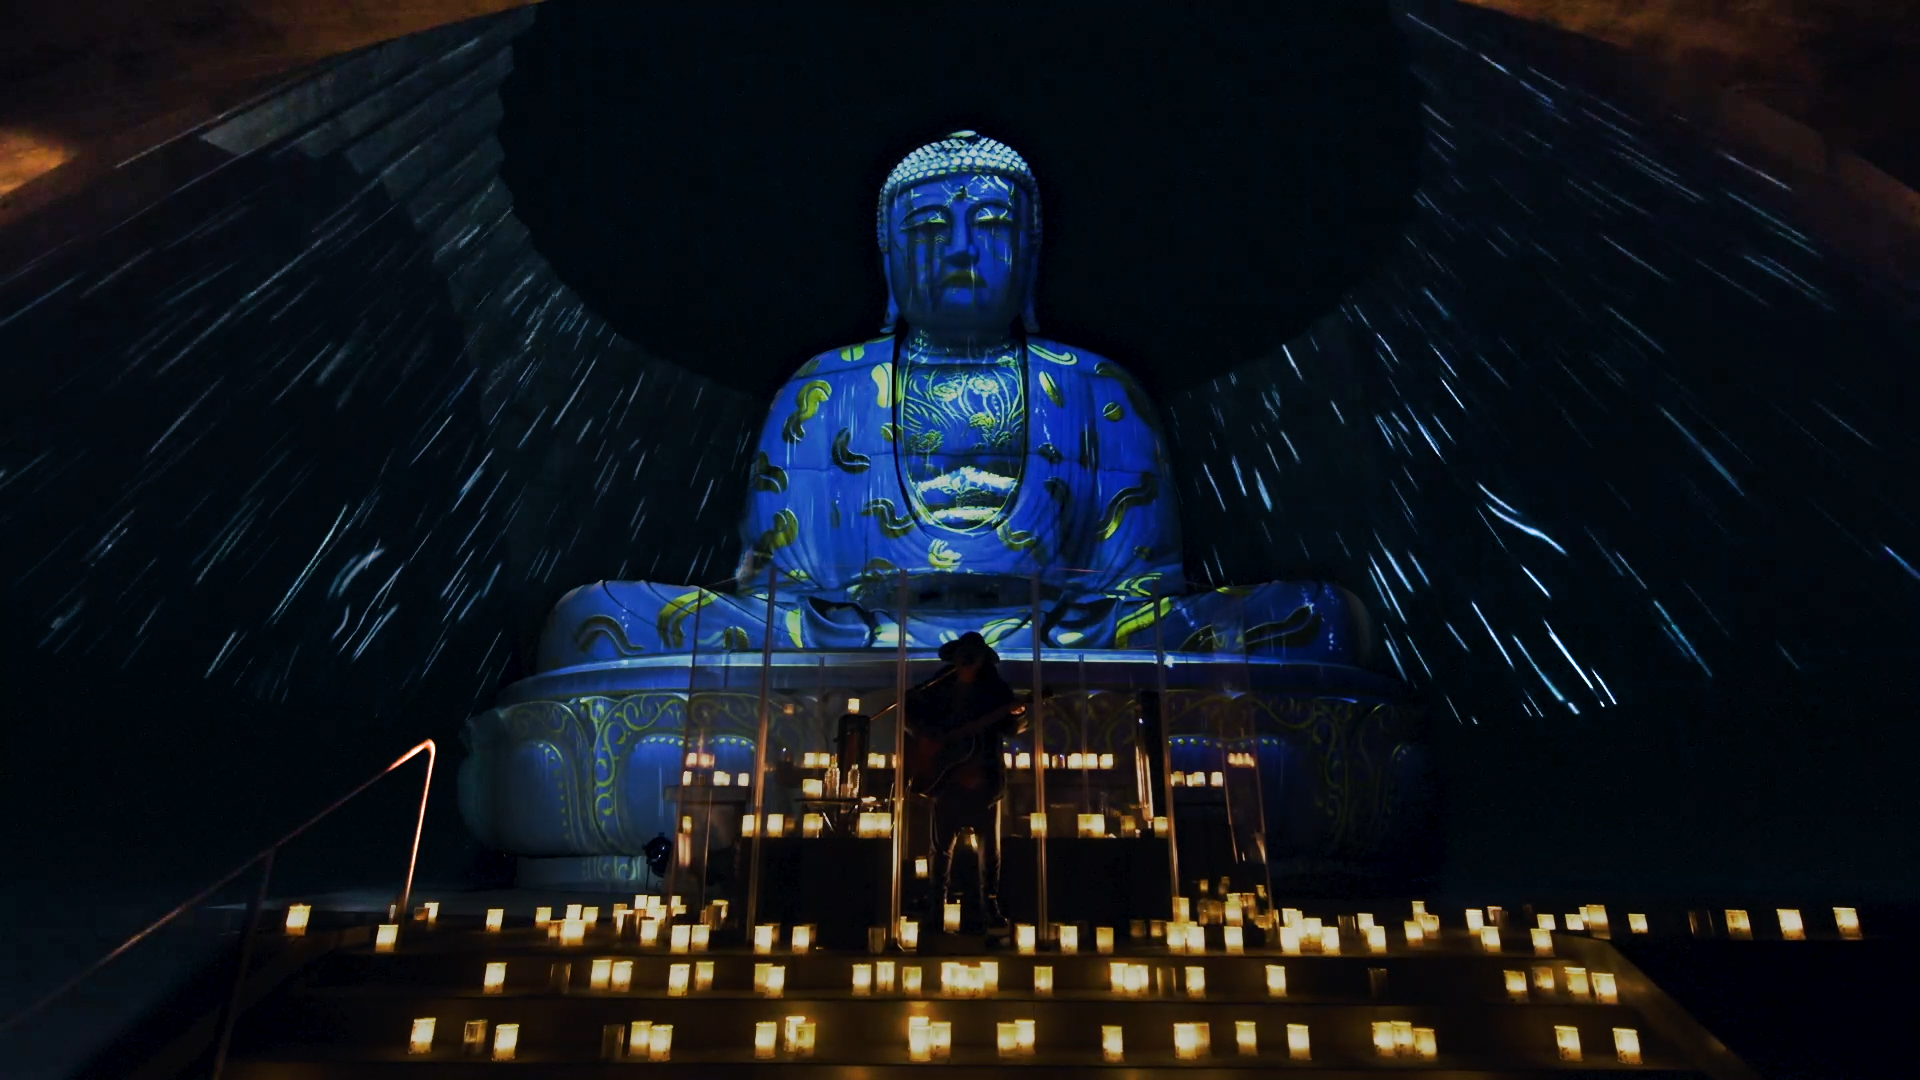 Thumbnail for PRAY TO THE GREAT BUDDHA